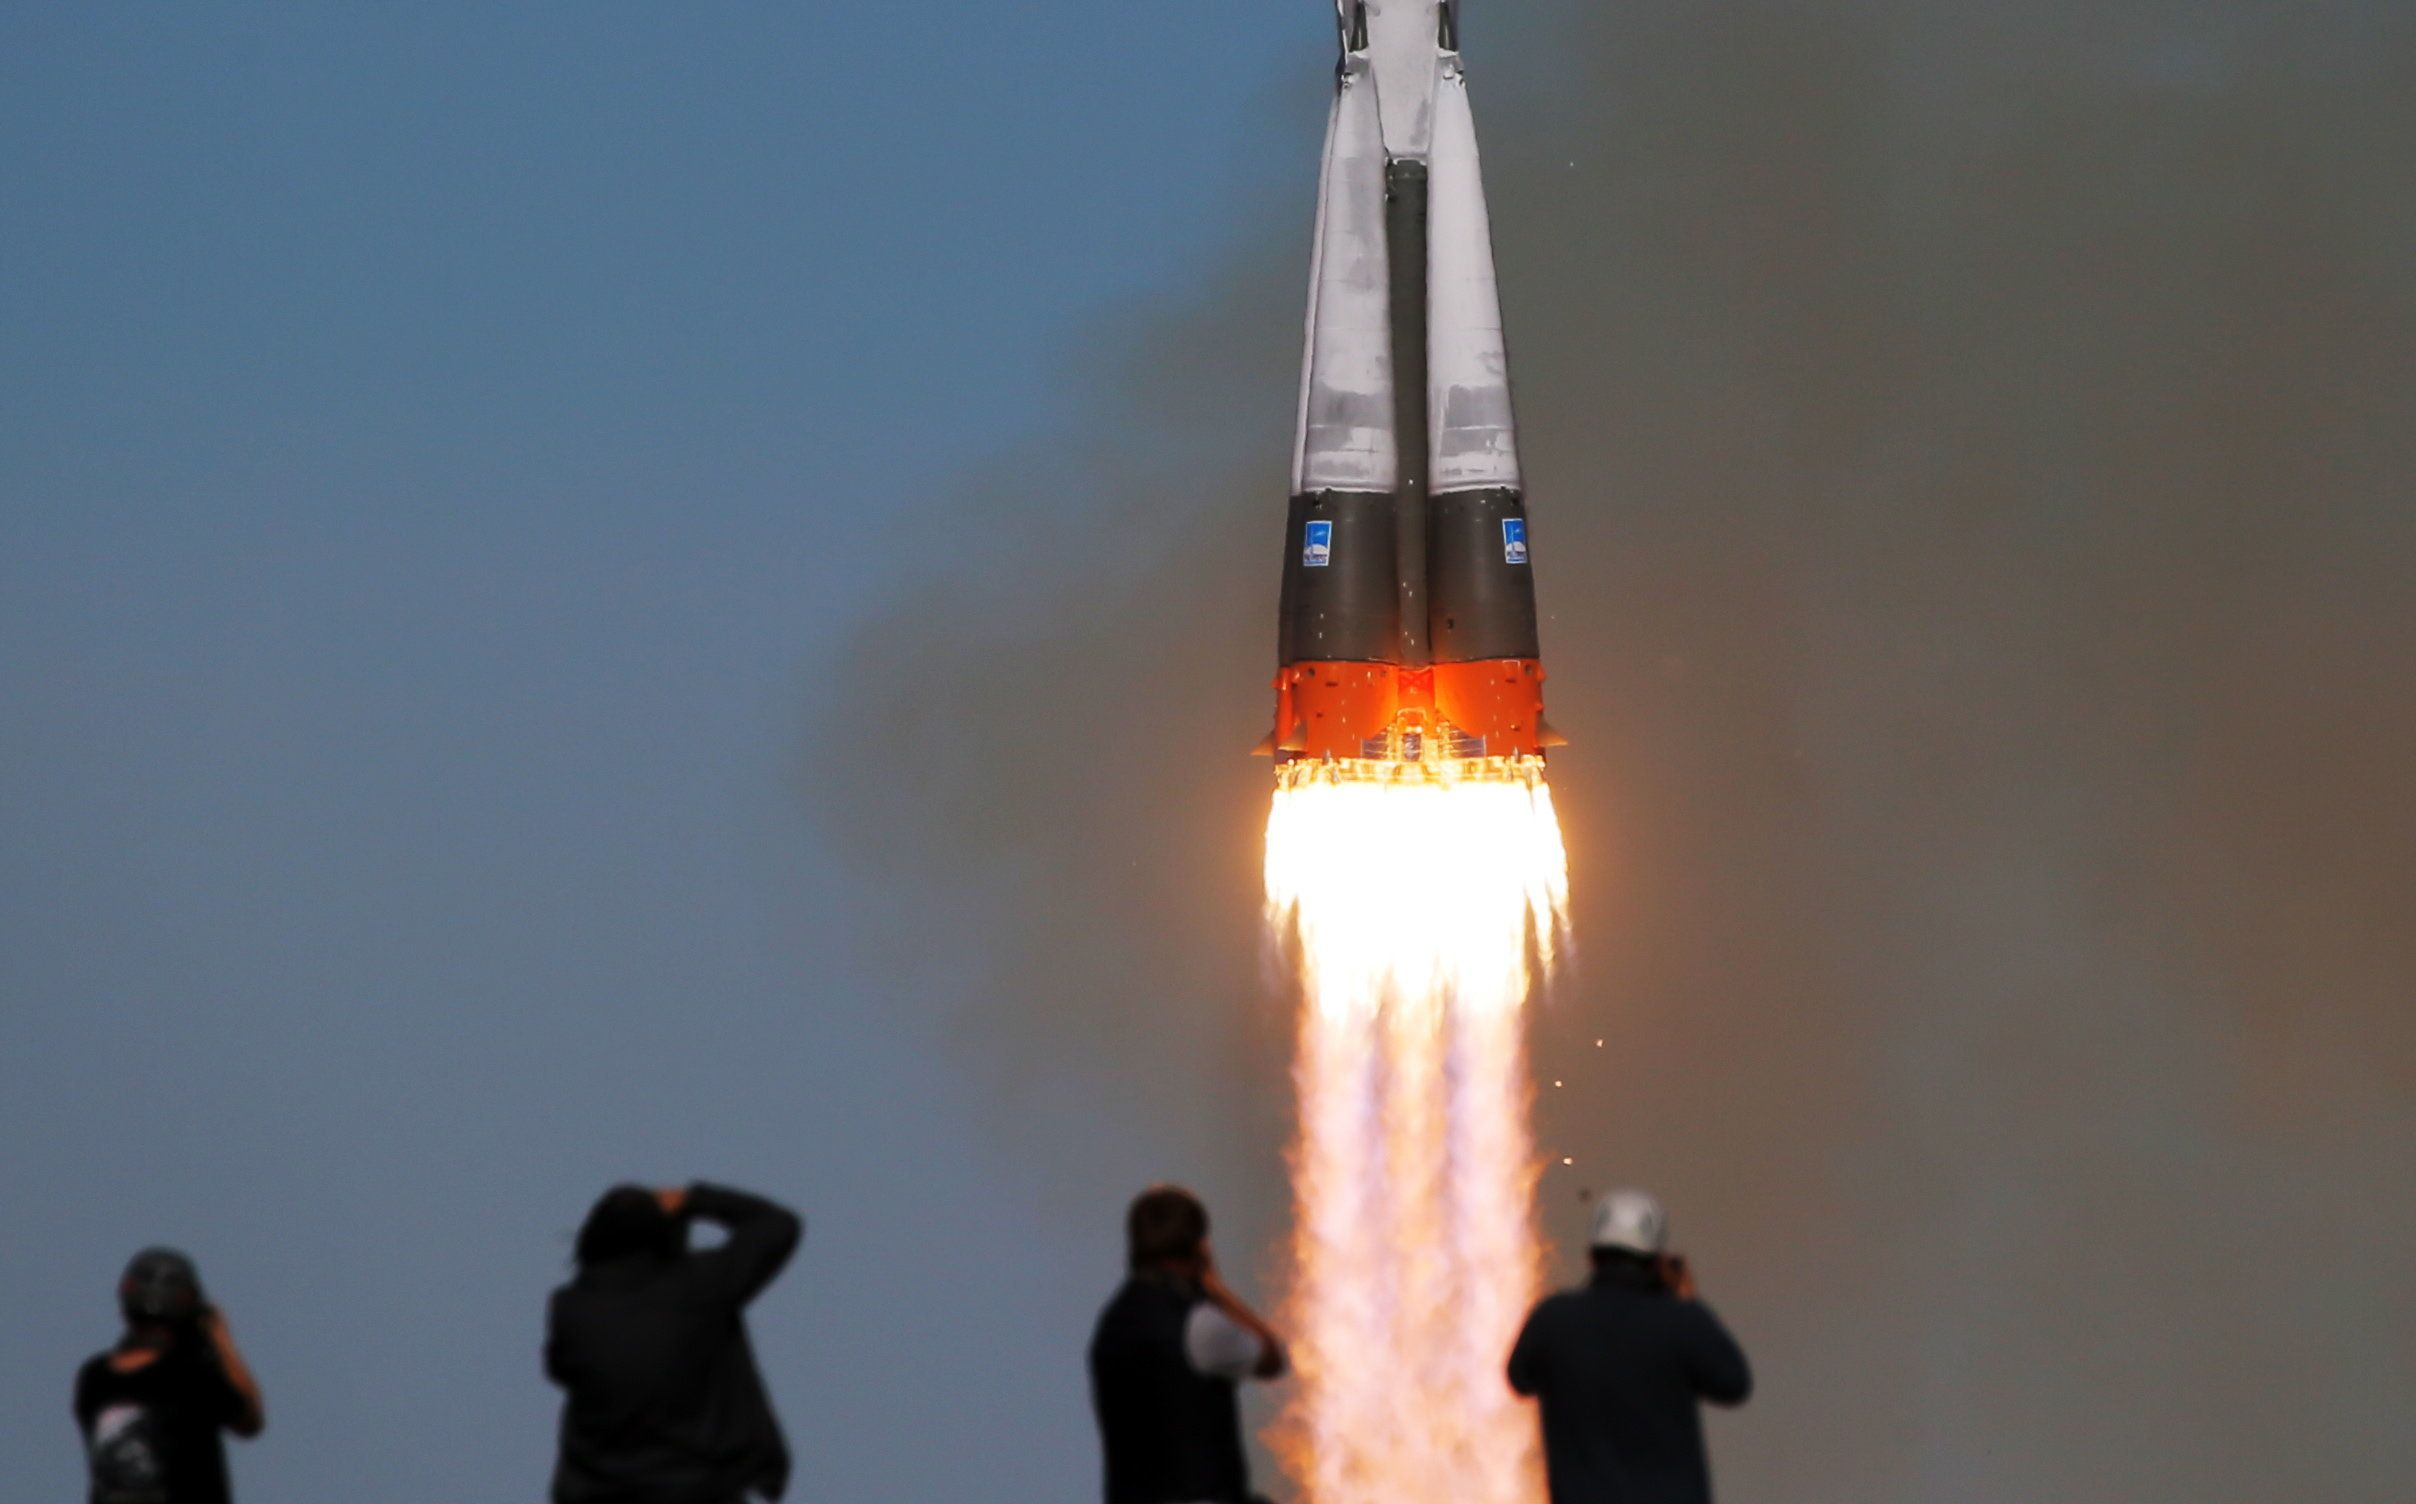 Russian Federation  opens criminal probe over failed rocket launch